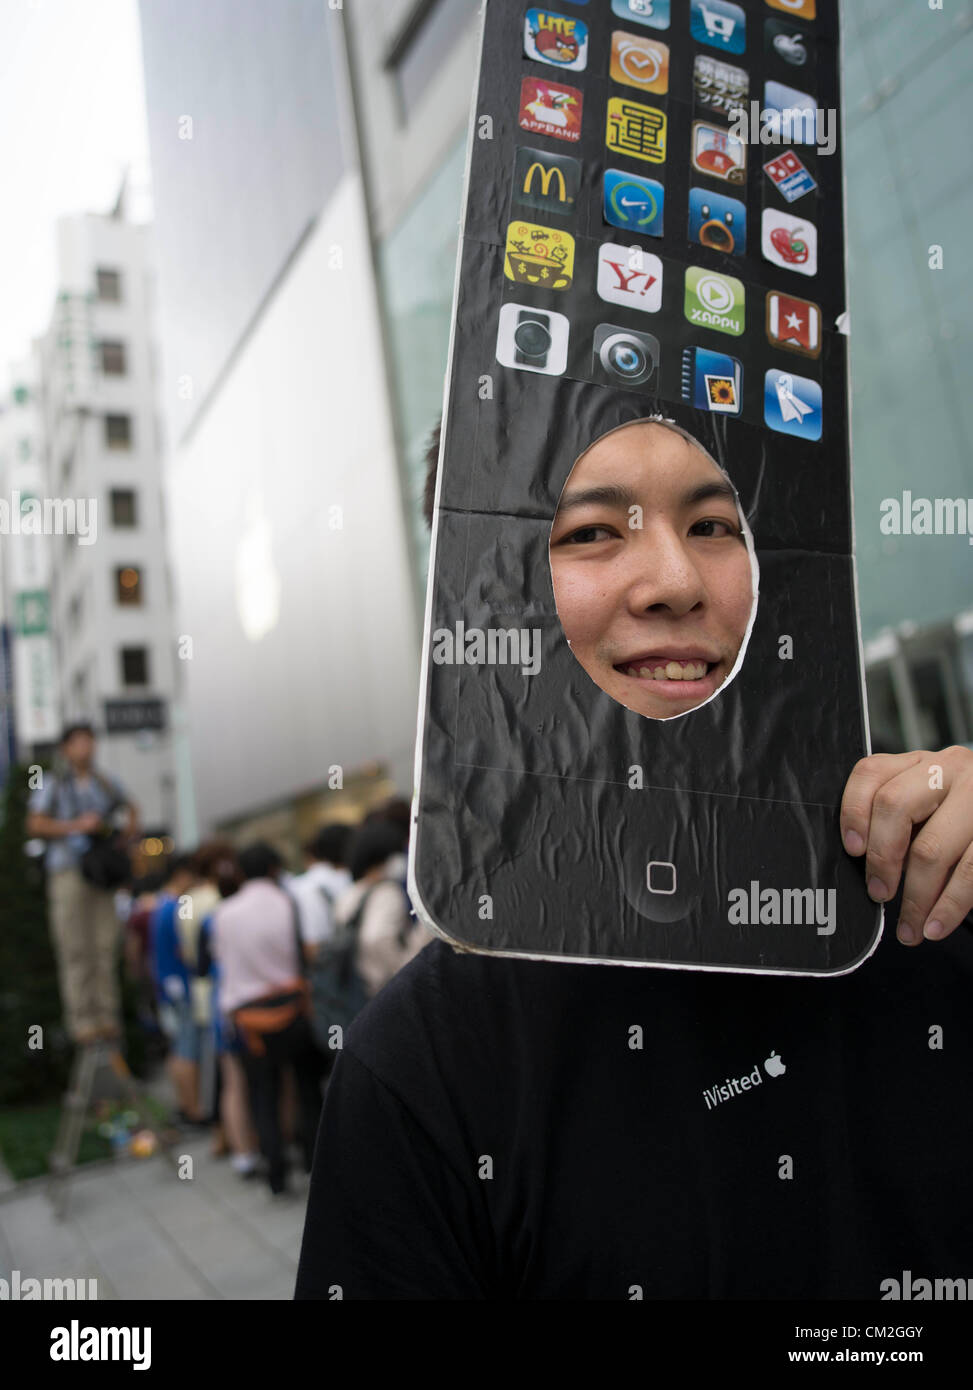 Japan, Tokyo. 21st September 2012. Japanese Apple fan waits in line for his new iphone 5 on the day of the release. Stock Photo